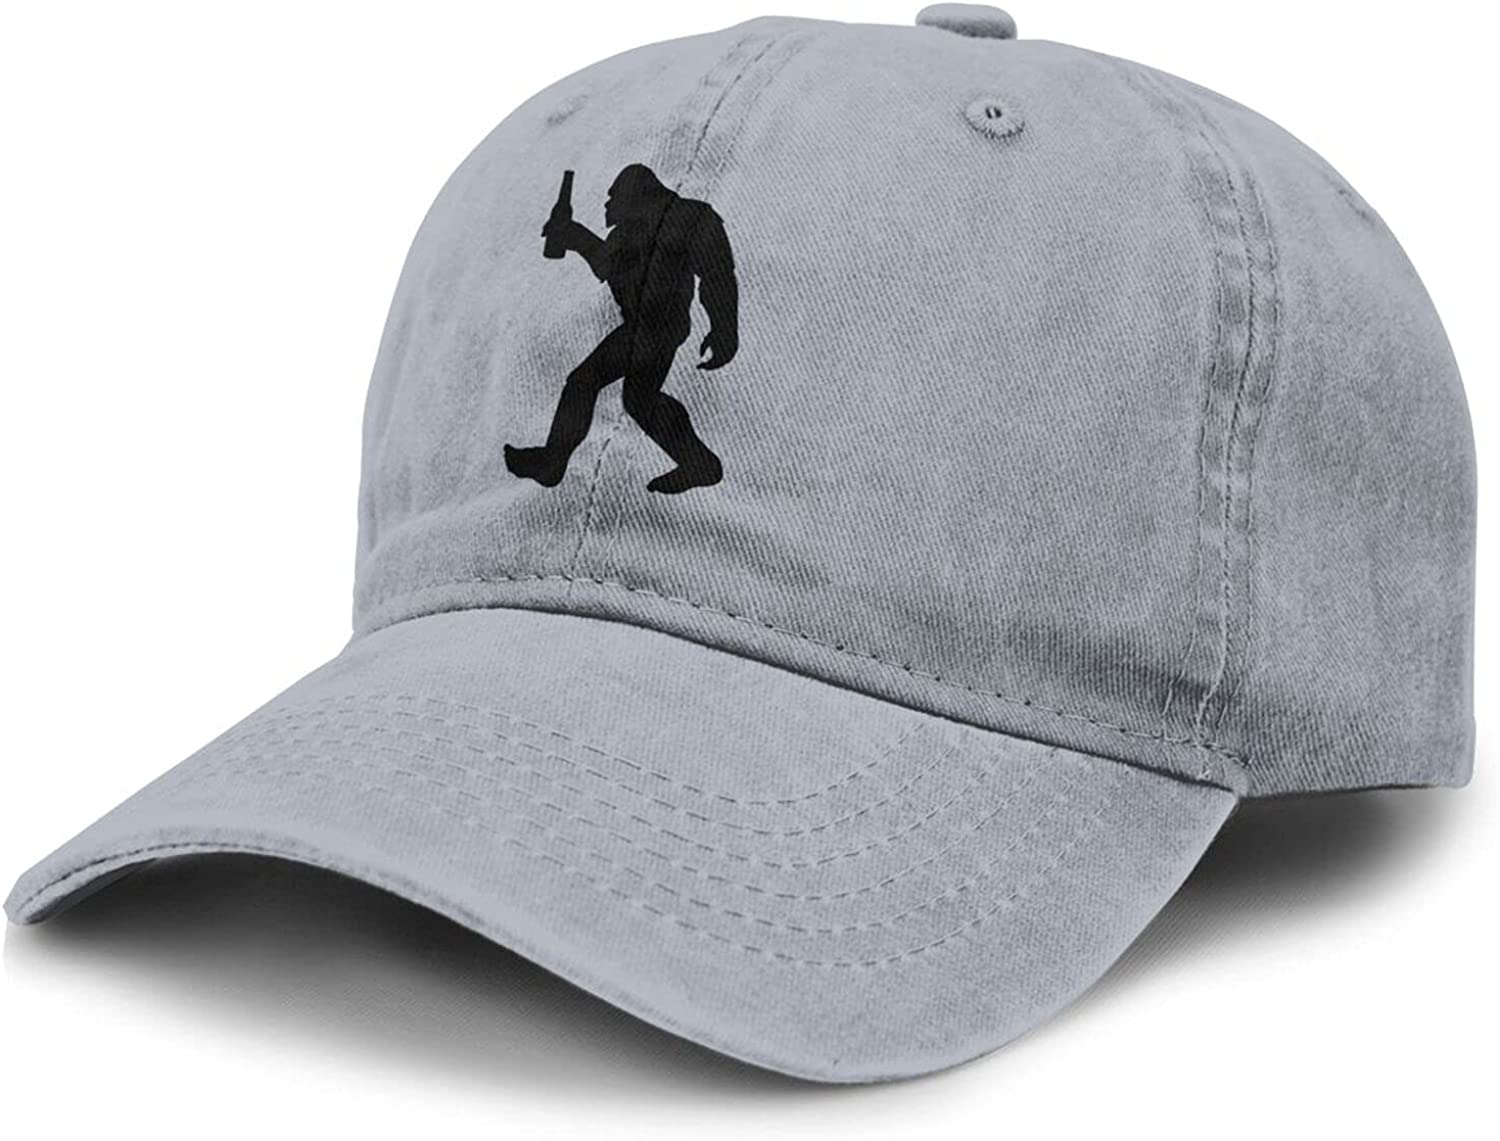 PARKNOTES Bigfoot and A Beer Cheap and Durable Adult Cowboy Hat Unisex